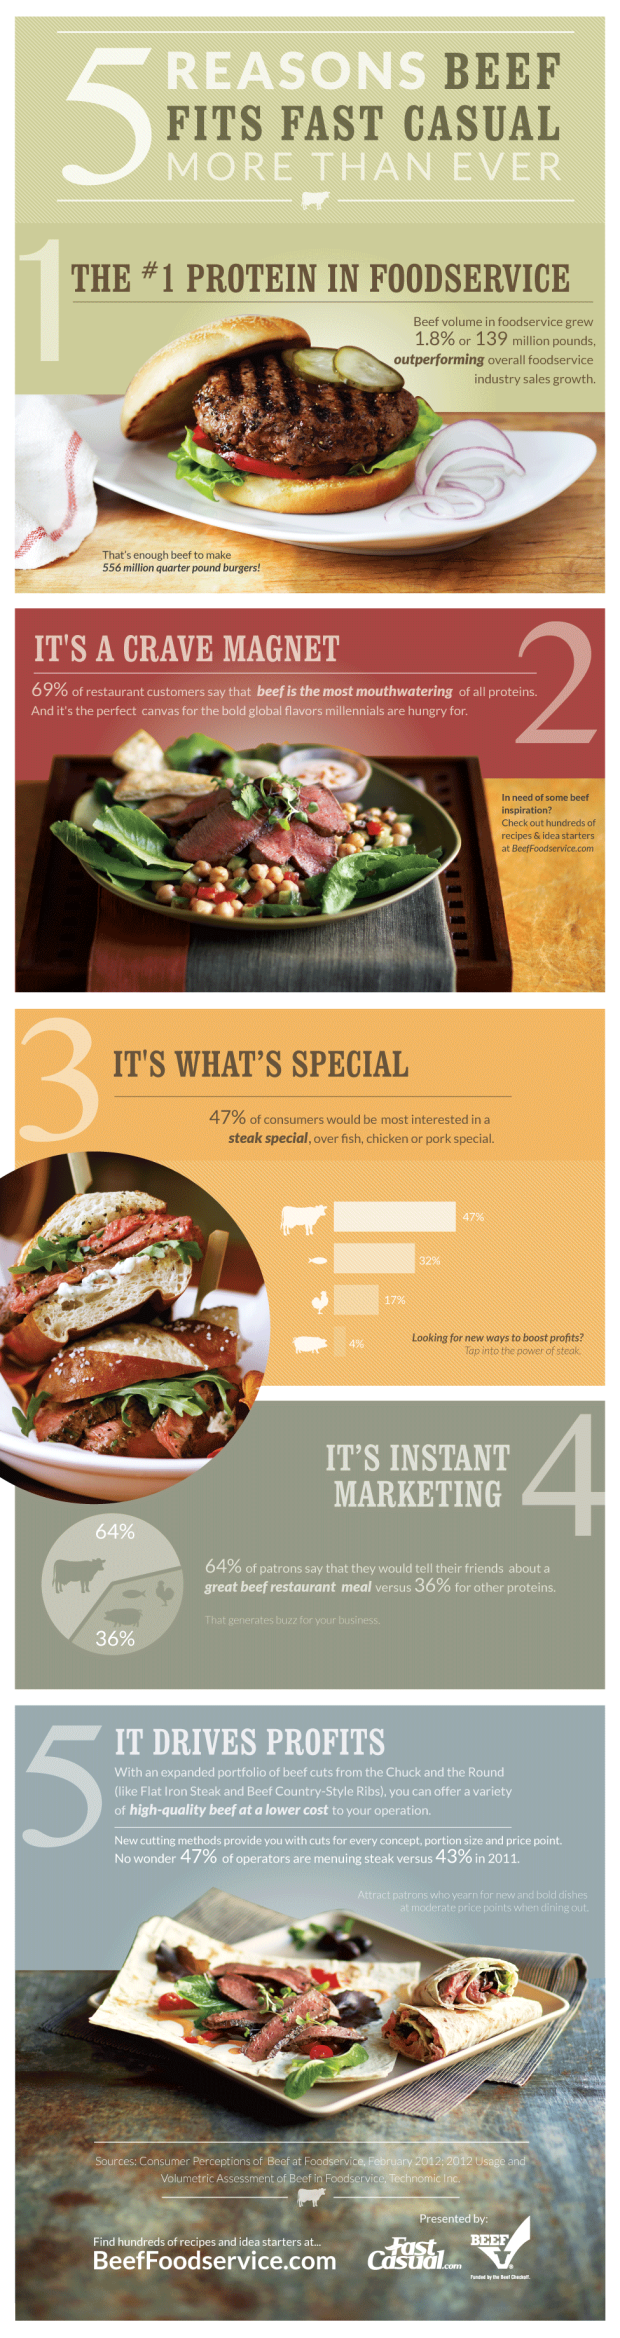 five-reasons-beef-fits-fast-casual-more-than-ever_51e465f44fab2